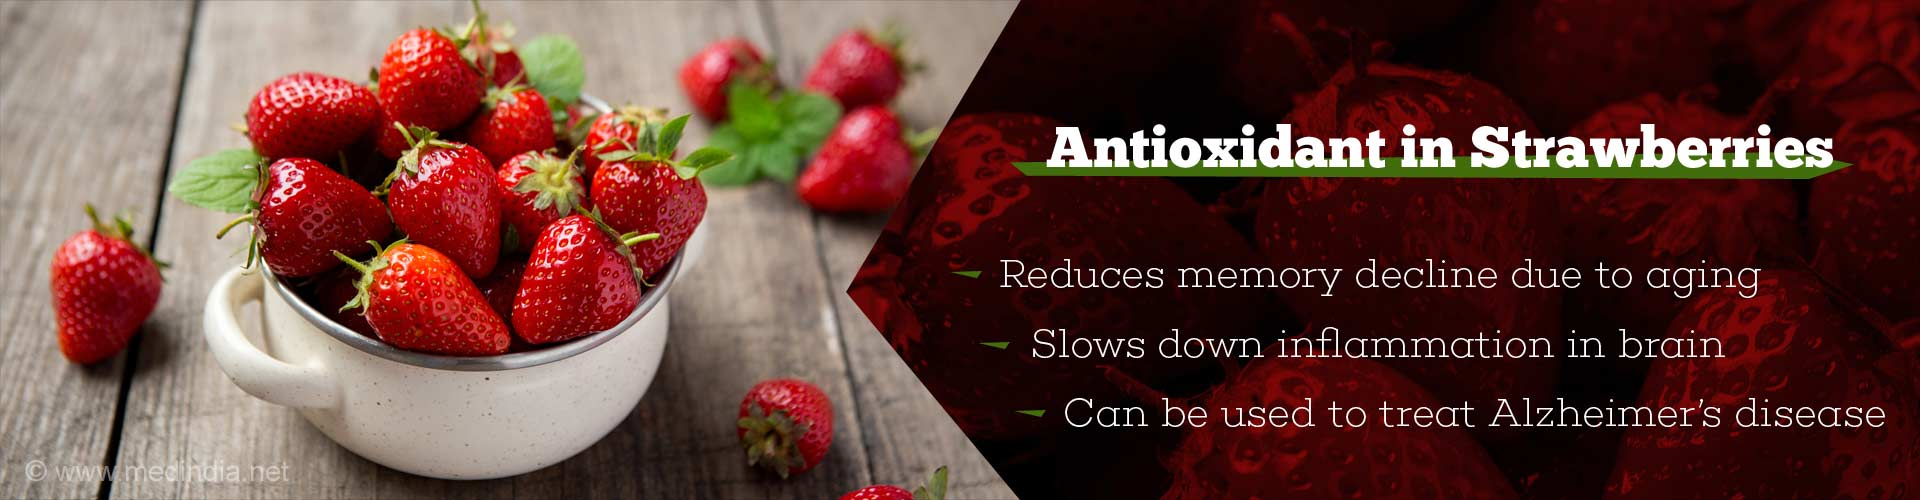 Here's How the Antioxidant In Strawberries Retards Age-Related Memory Loss